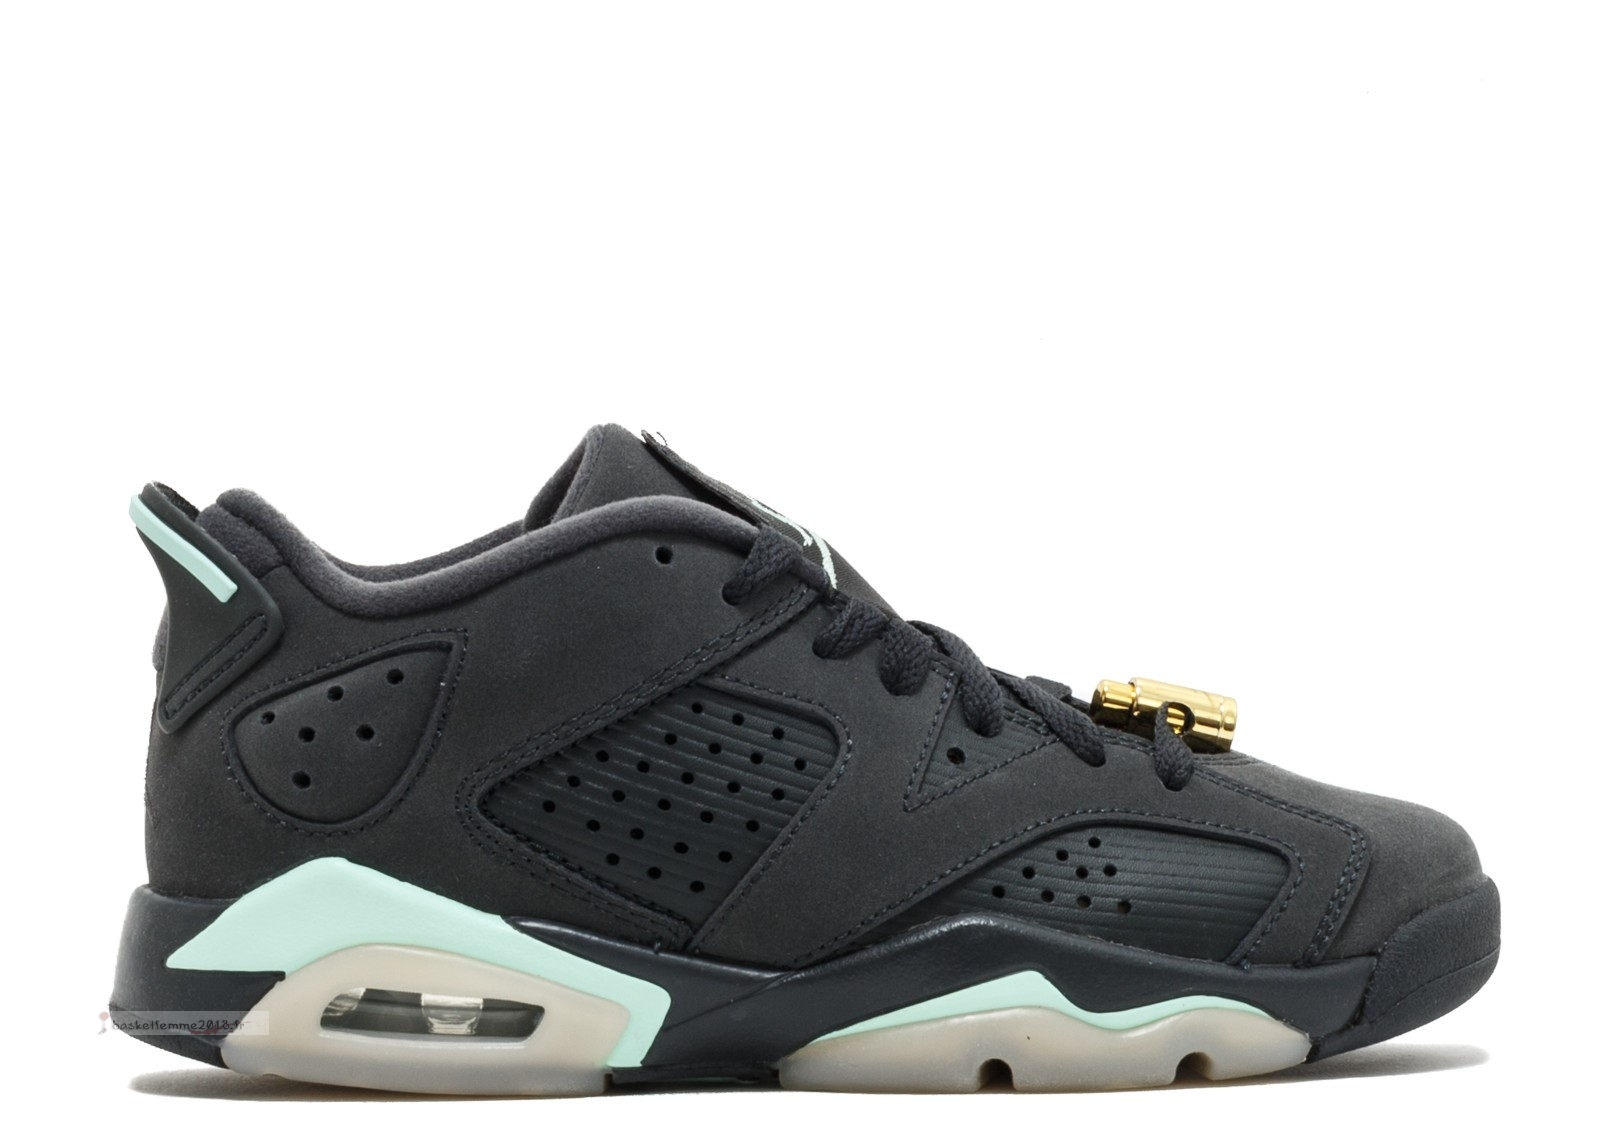 "Air Jordan 6 Retro Low Gg ""Mint Foam"" Noir (768878-015) Chaussure de Basket"